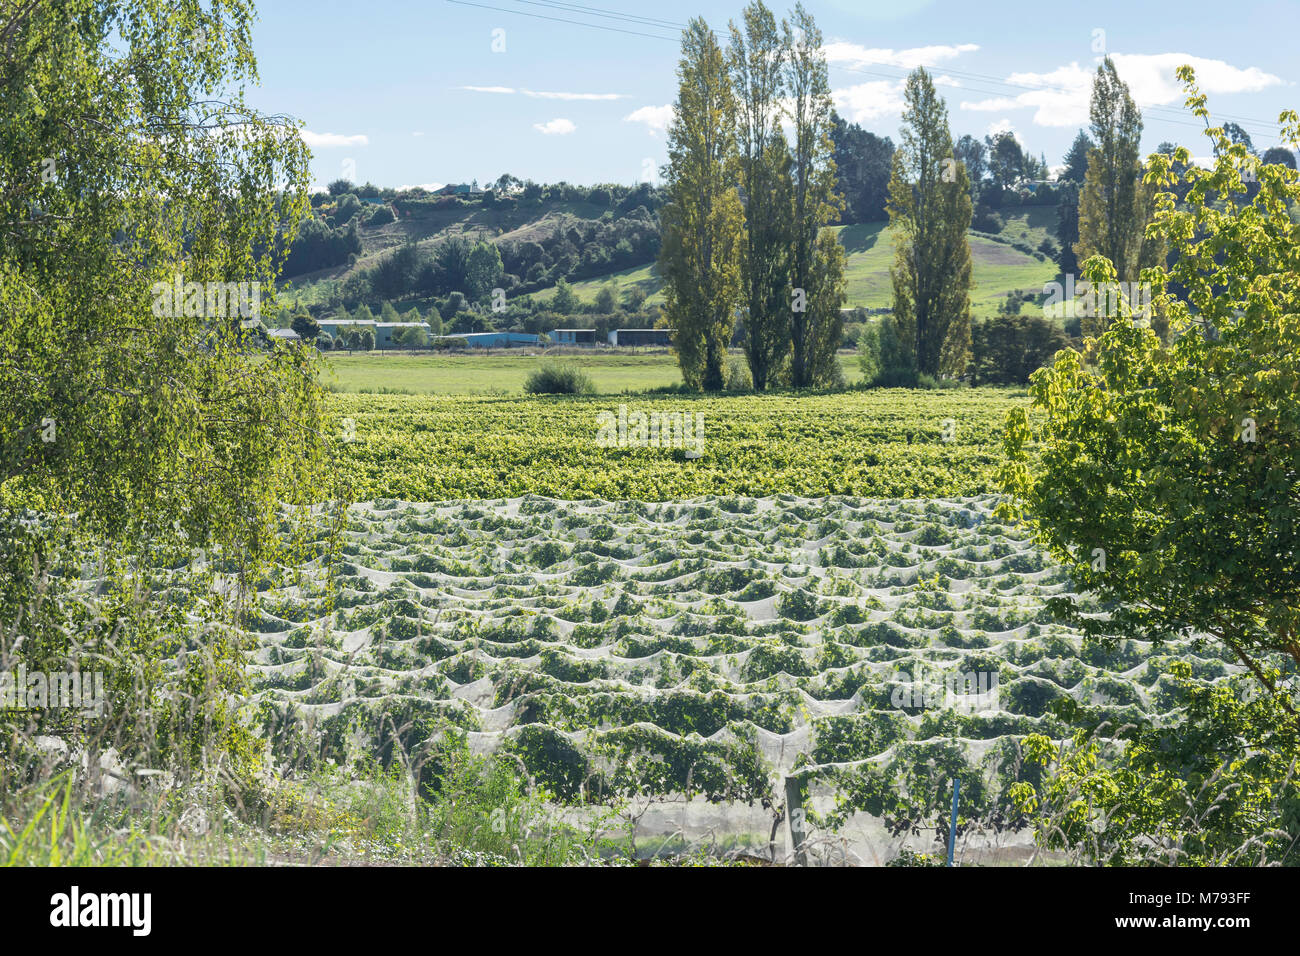 Grape vines covered with netting, Upper Moutere, Tasman District, New Zealand - Stock Image